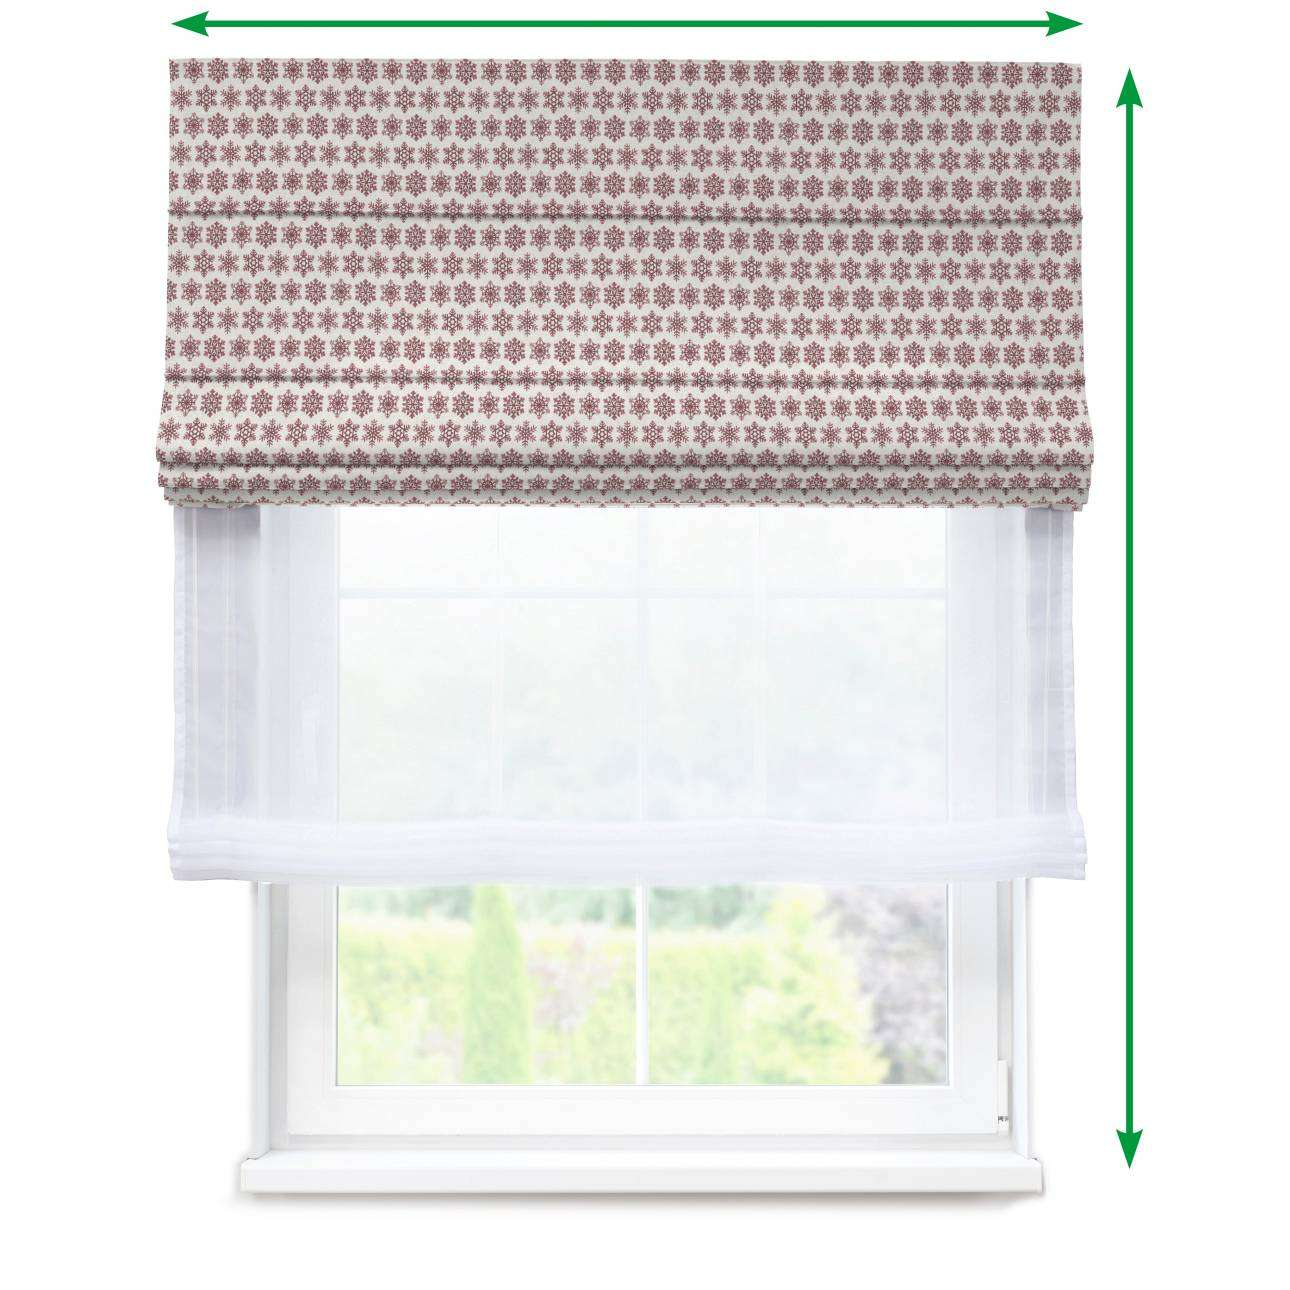 Voile and fabric roman blind (DUO II) in collection Christmas, fabric: 630-22